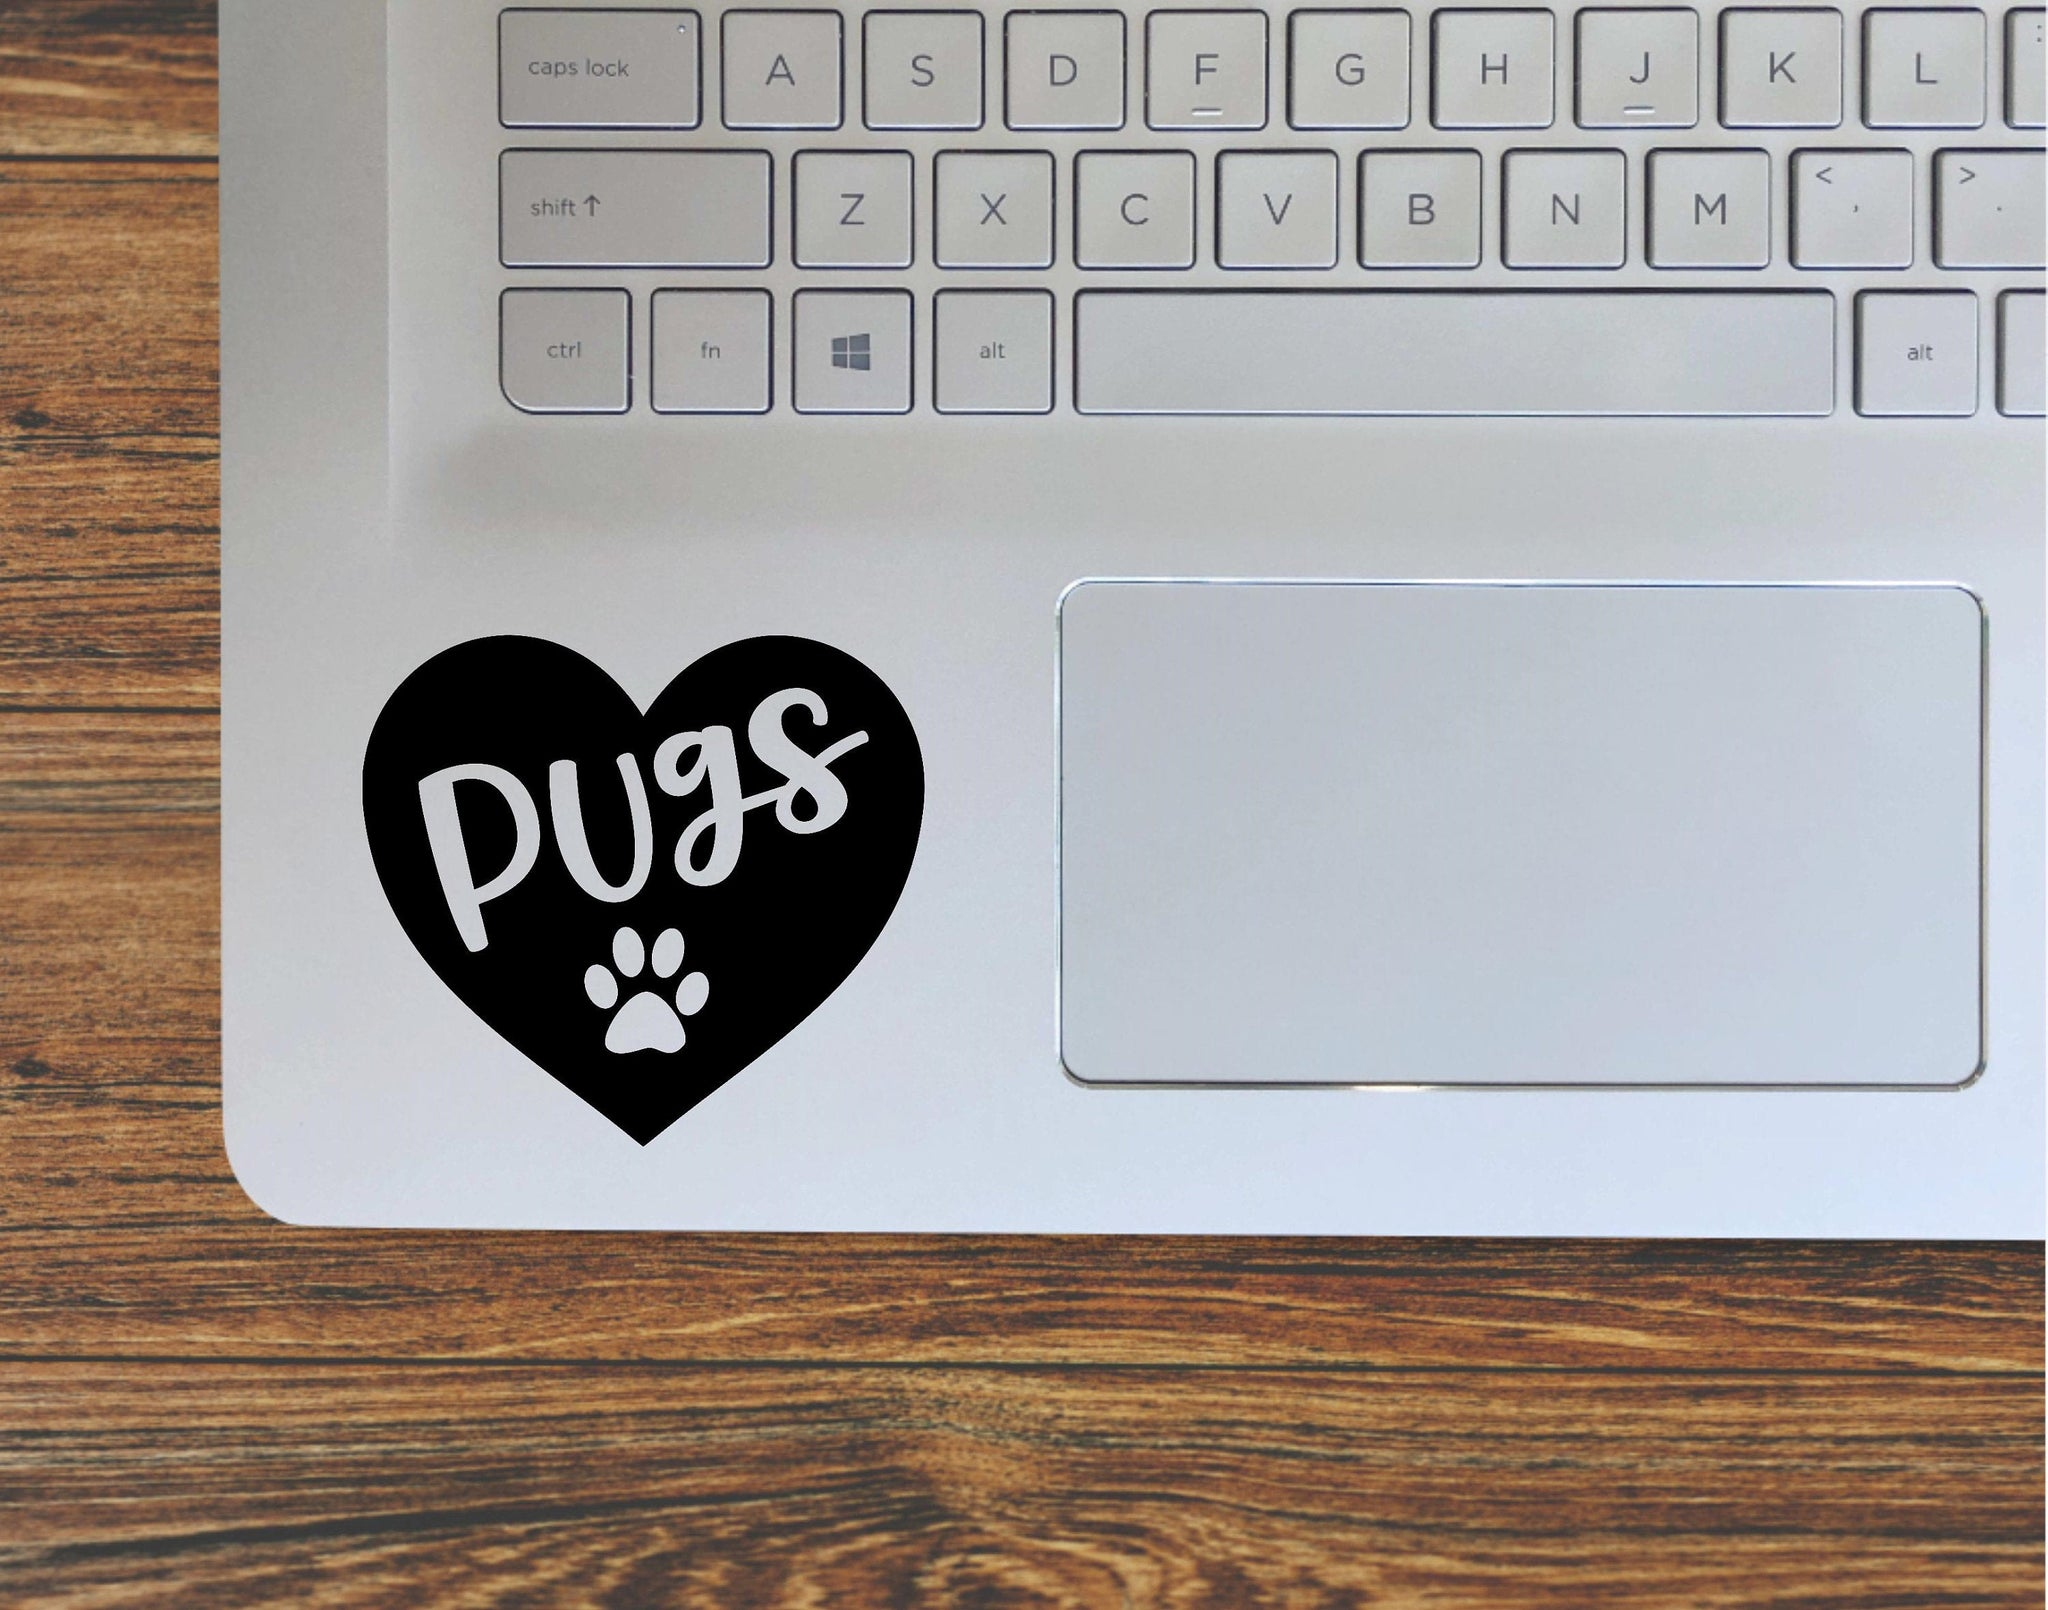 Pug Dog Paw Print Heart, Love Pugs Vinyl Decal Sticker